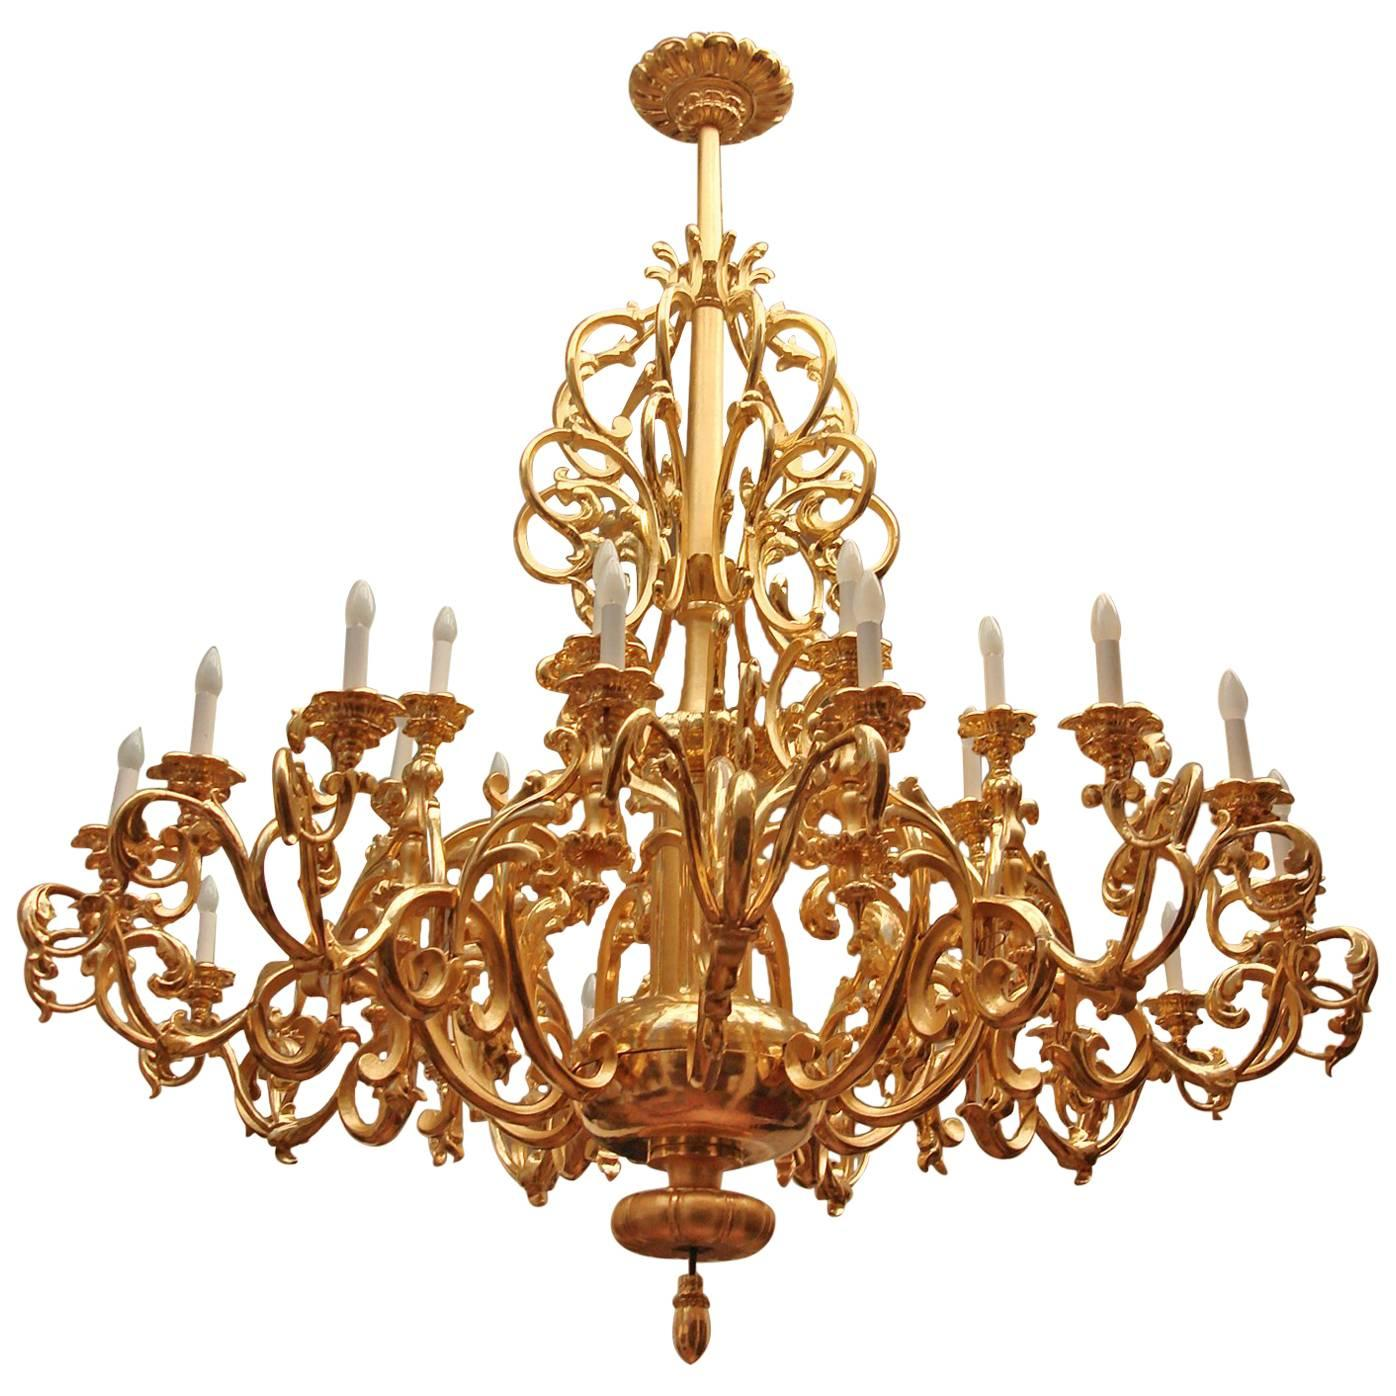 Twenty Five-Light Baroque Style Giltwood Chandelier